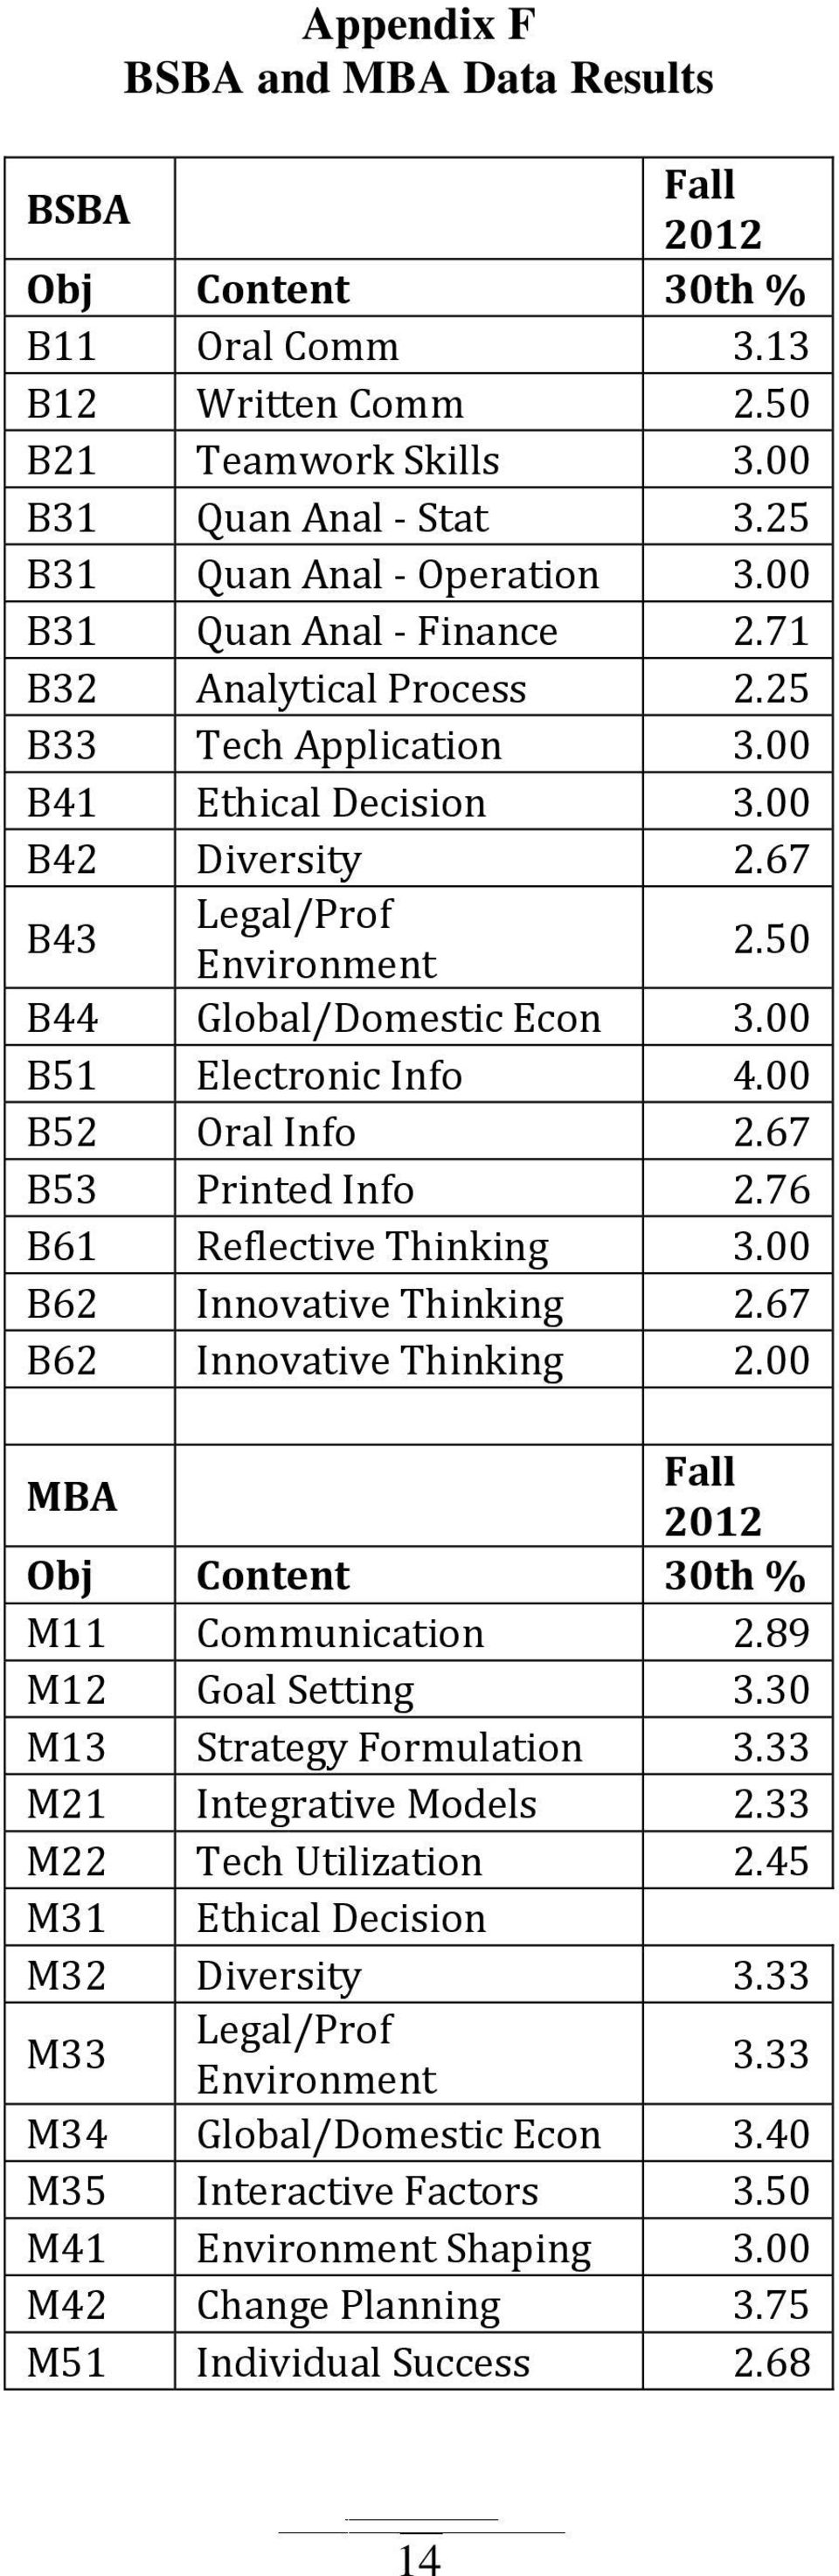 00 B51 Electronic Info 4.00 B52 Oral Info 2.67 B53 Printed Info 2.76 B61 Reflective Thinking 3.00 B62 Innovative Thinking 2.67 B62 Innovative Thinking 2.